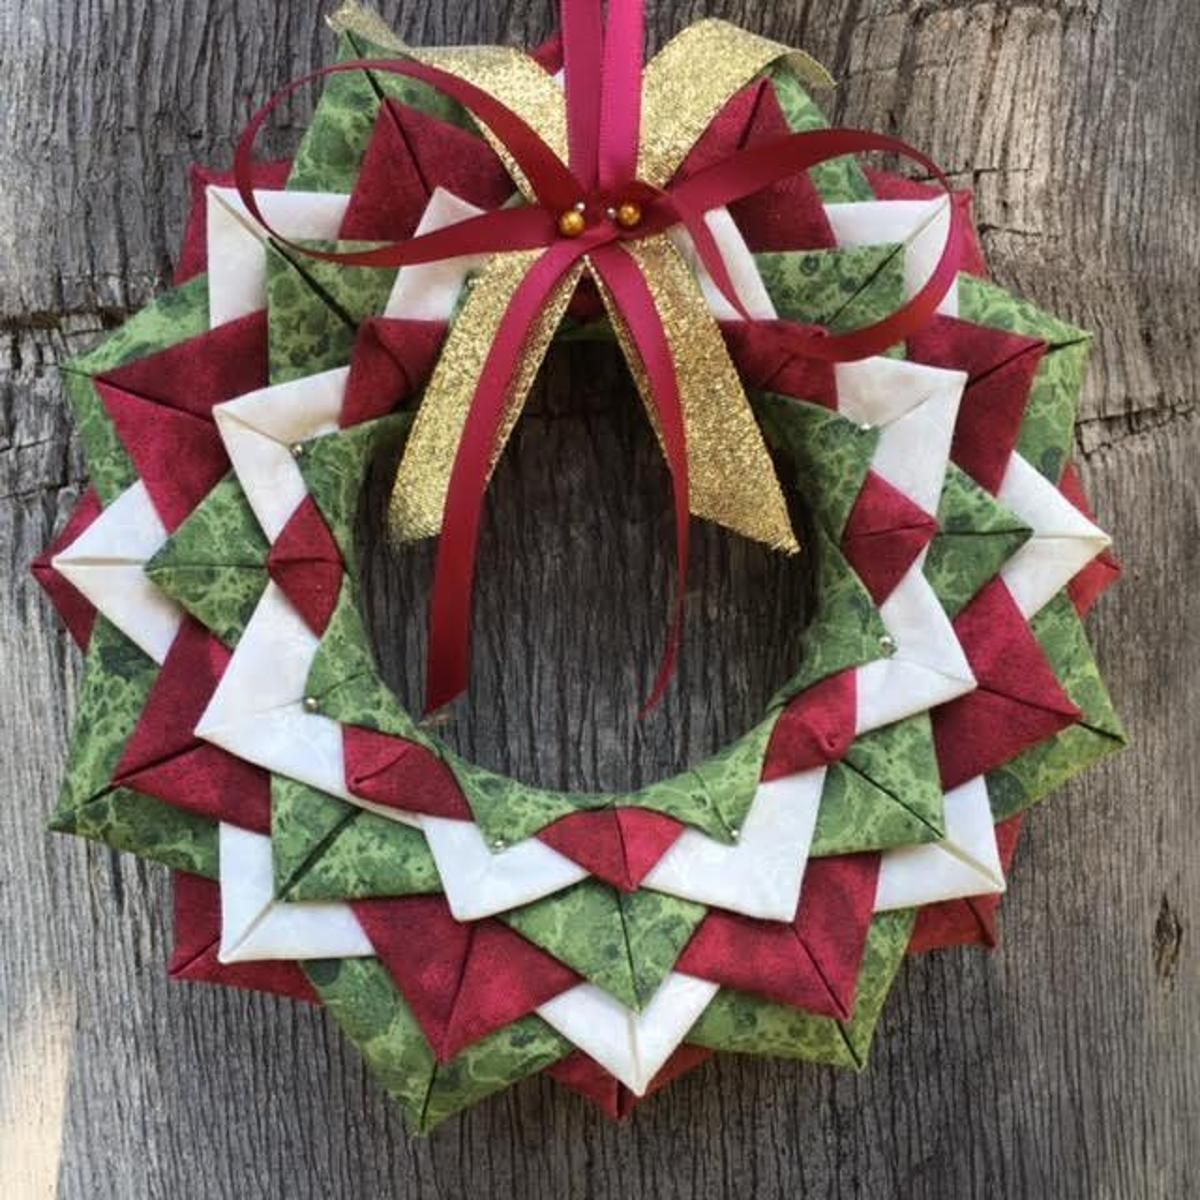 Folded fabric christmas ornaments patterns - No Sew Folded Fabric Wreath Ornament Pattern